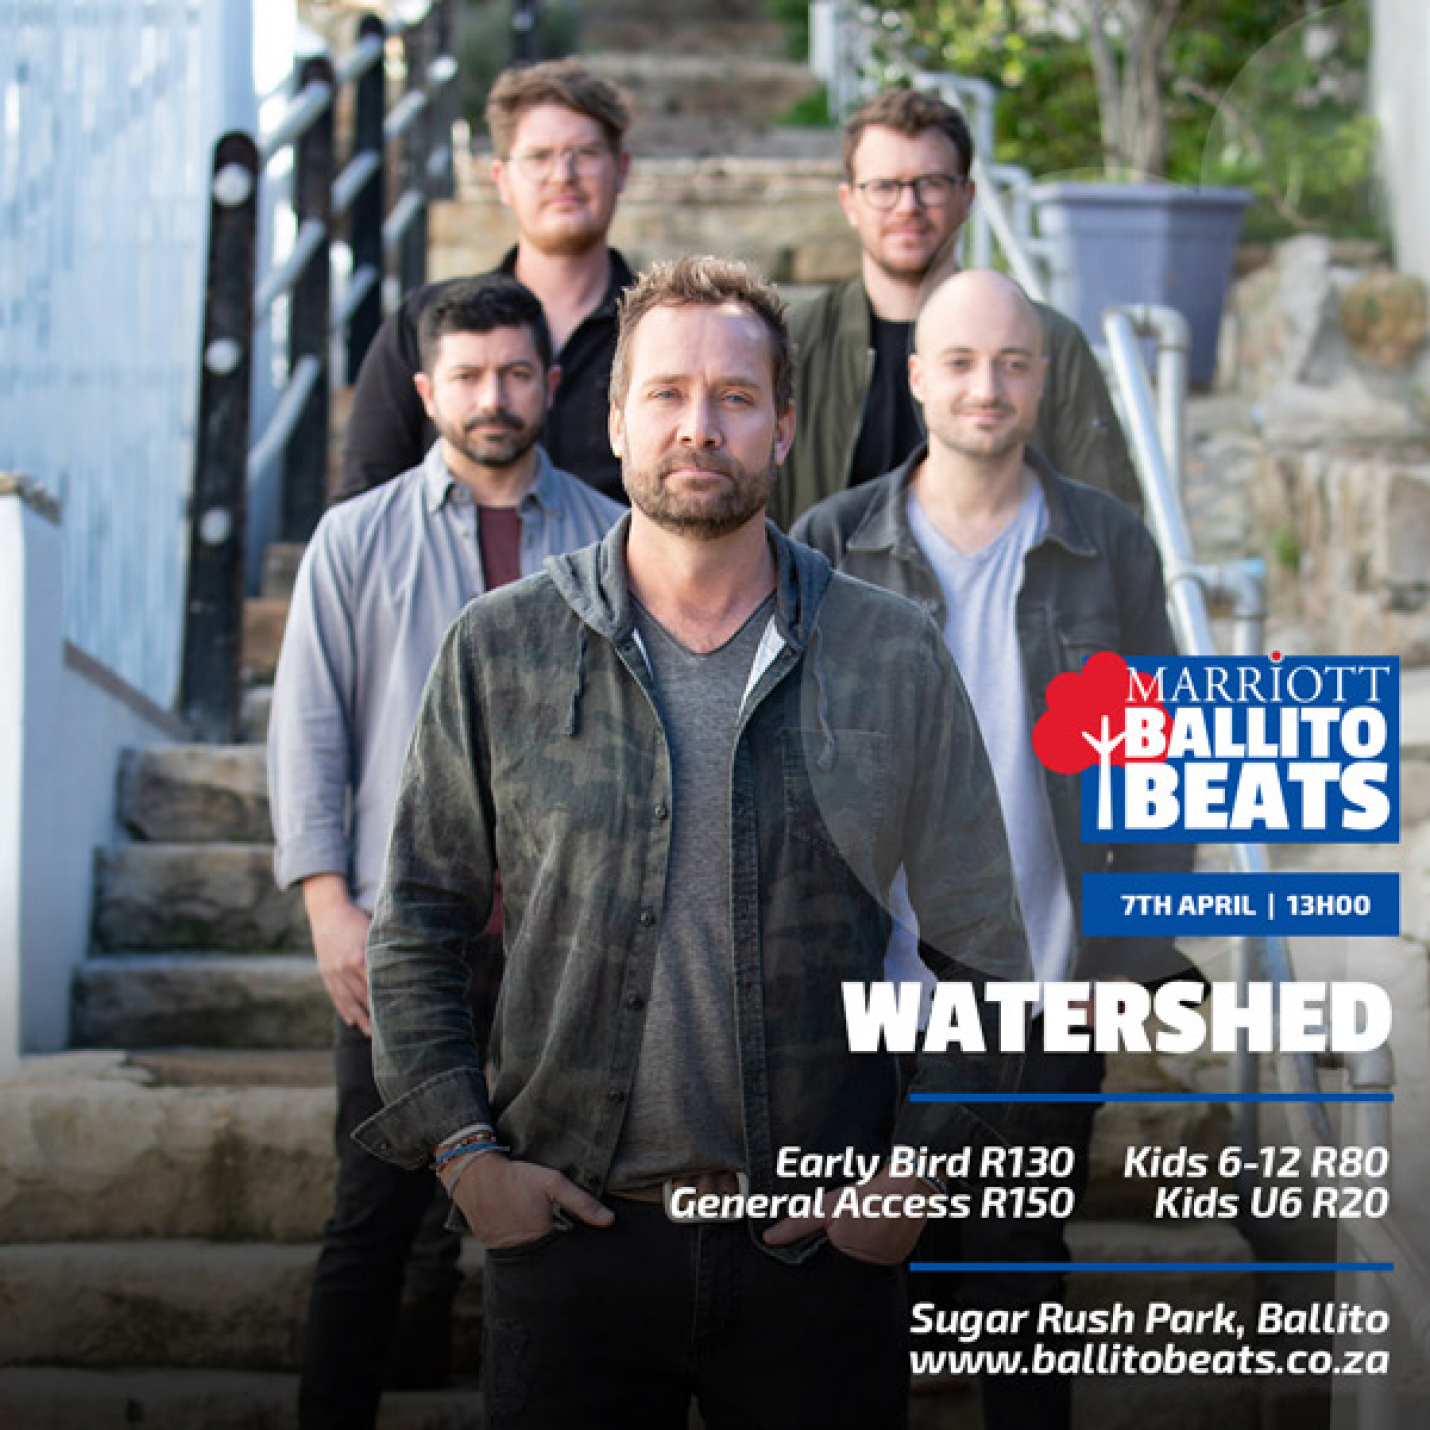 Watershed and Friends... at Marriott Ballito Beats this Sunday